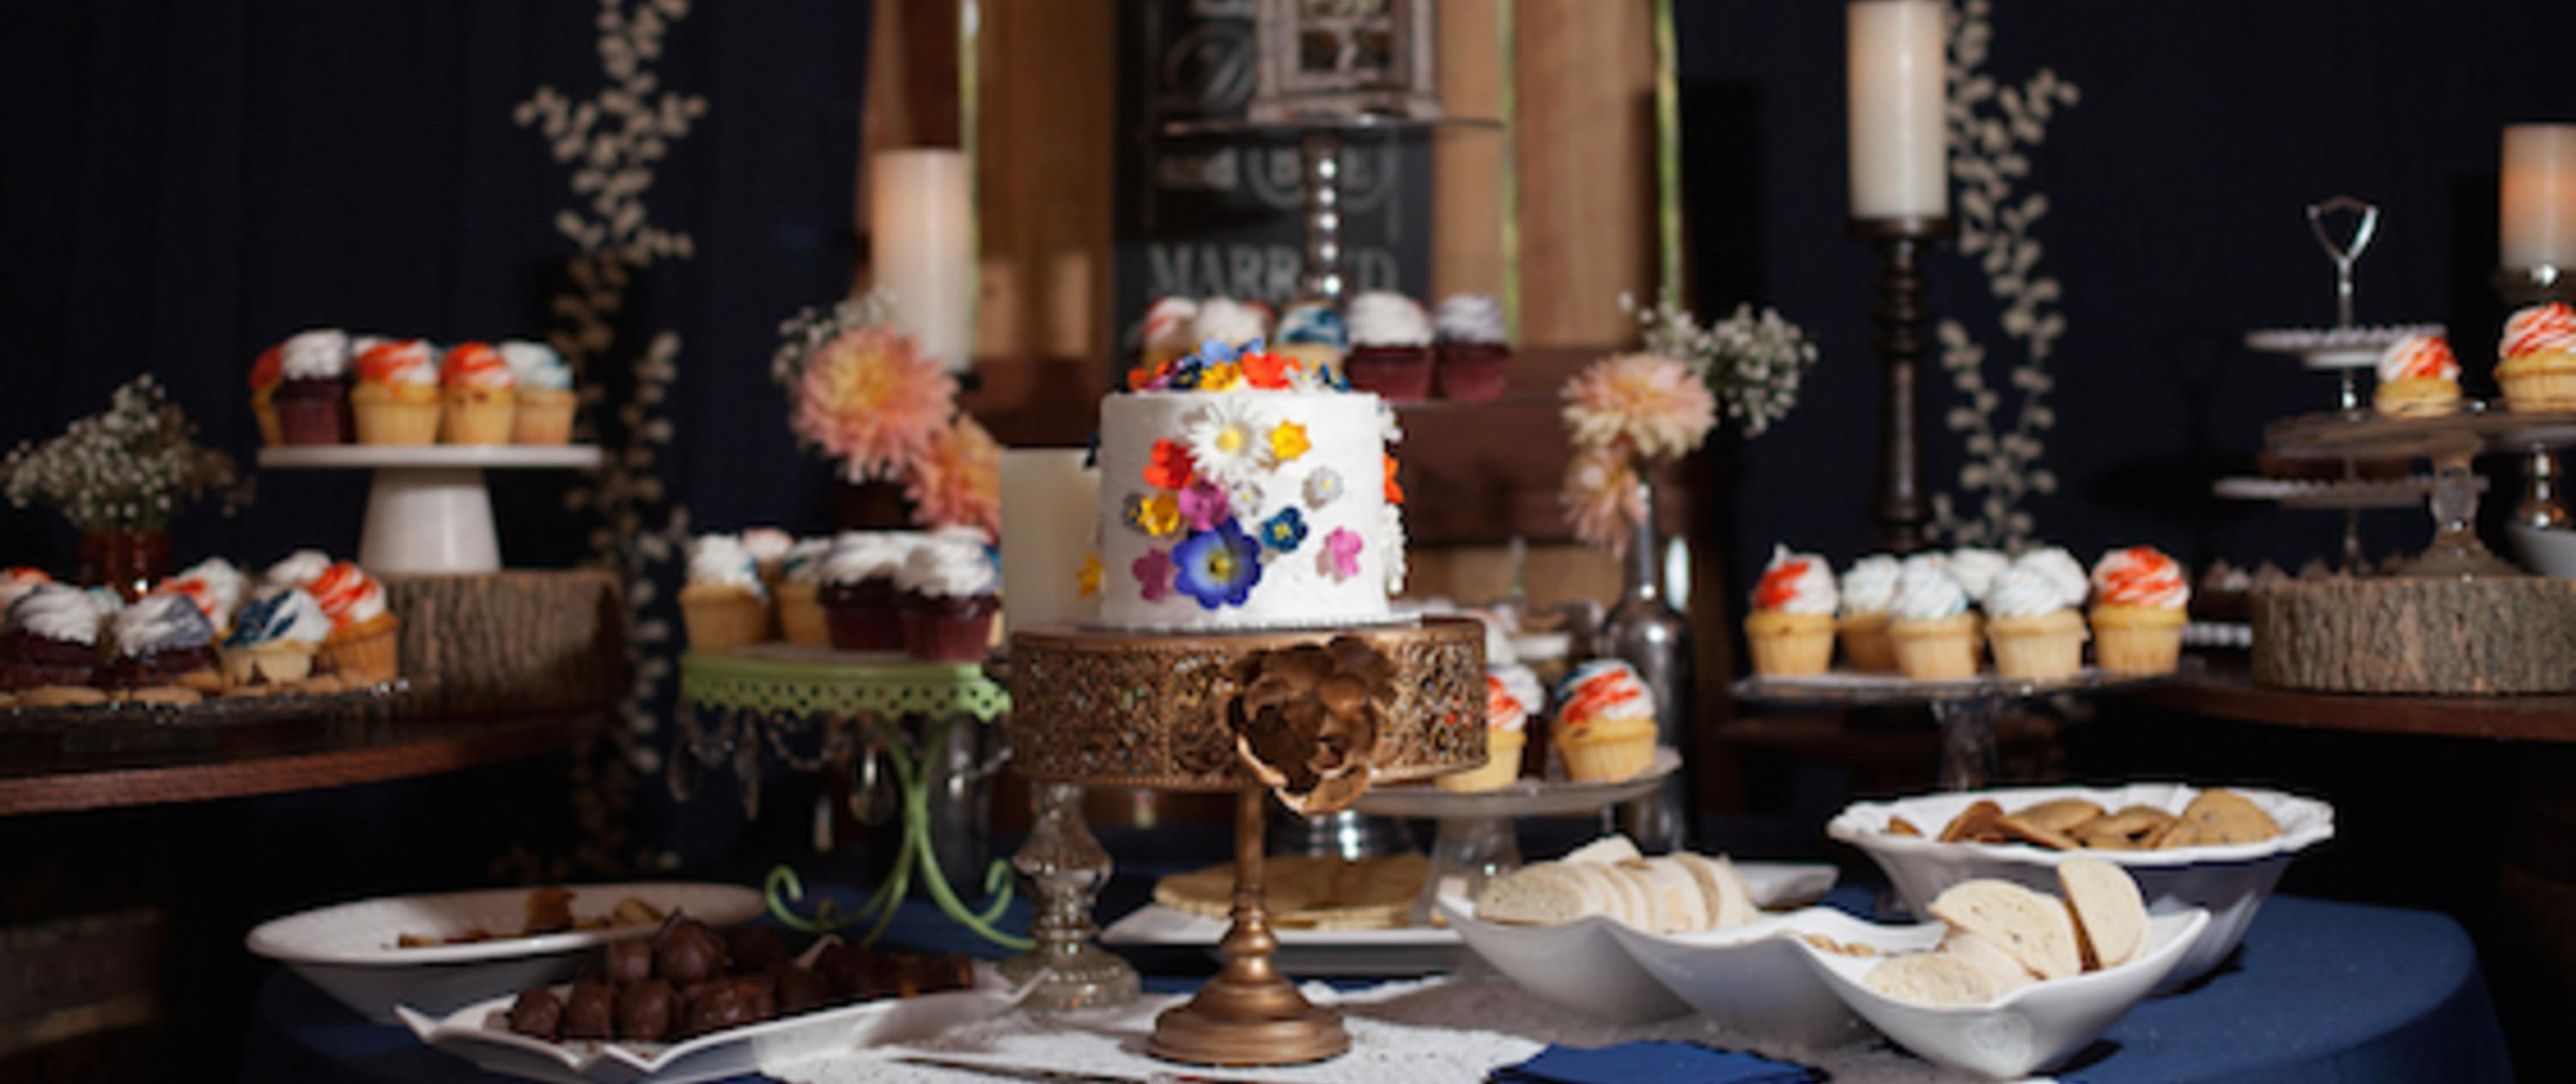 Fancy table setting with a miniature wedding cake and cupcakes